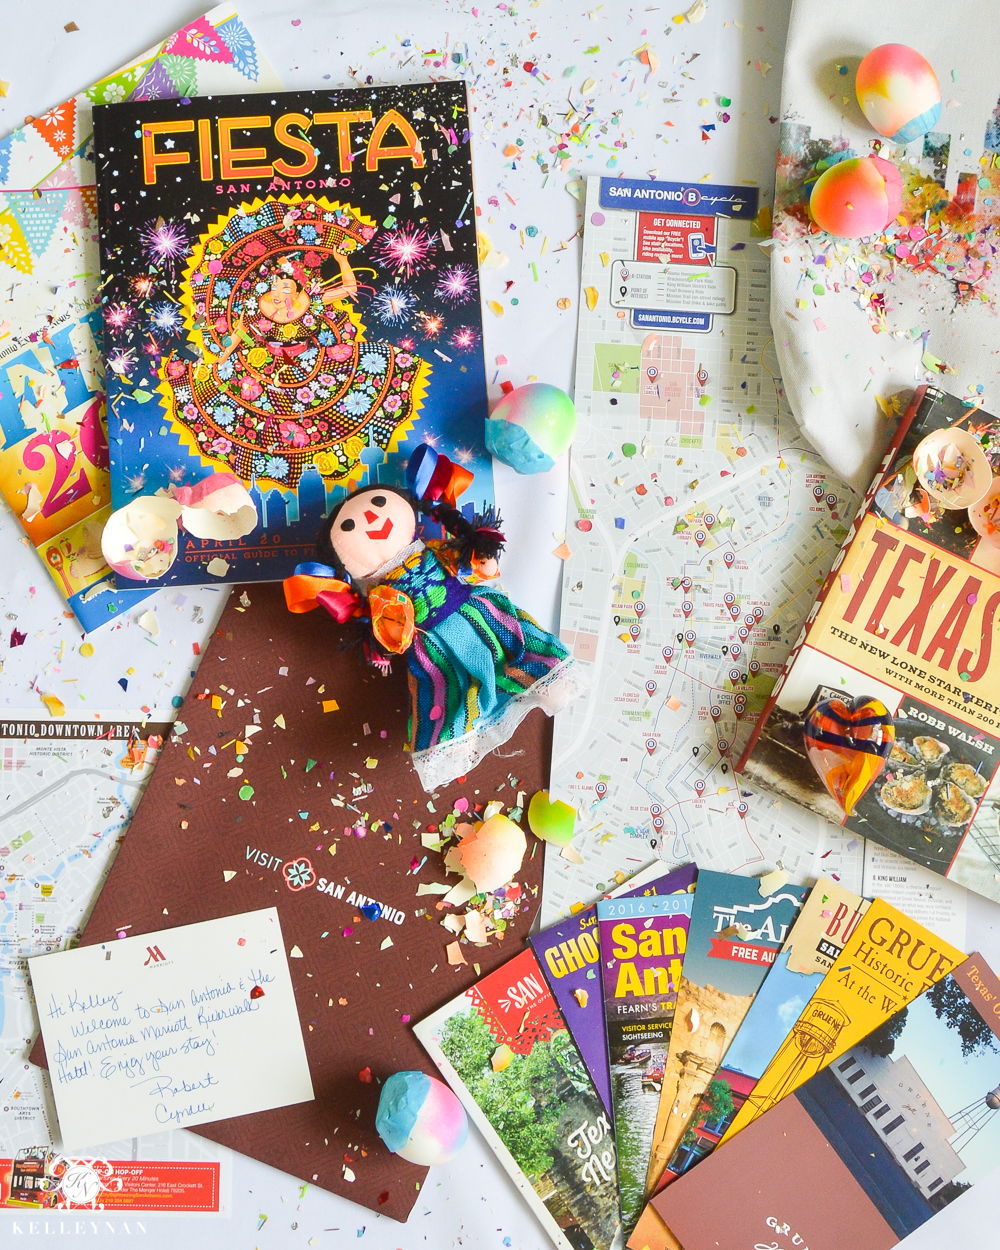 Texas Trip and San Antonio Fiesta Week-Cascarones and confetti